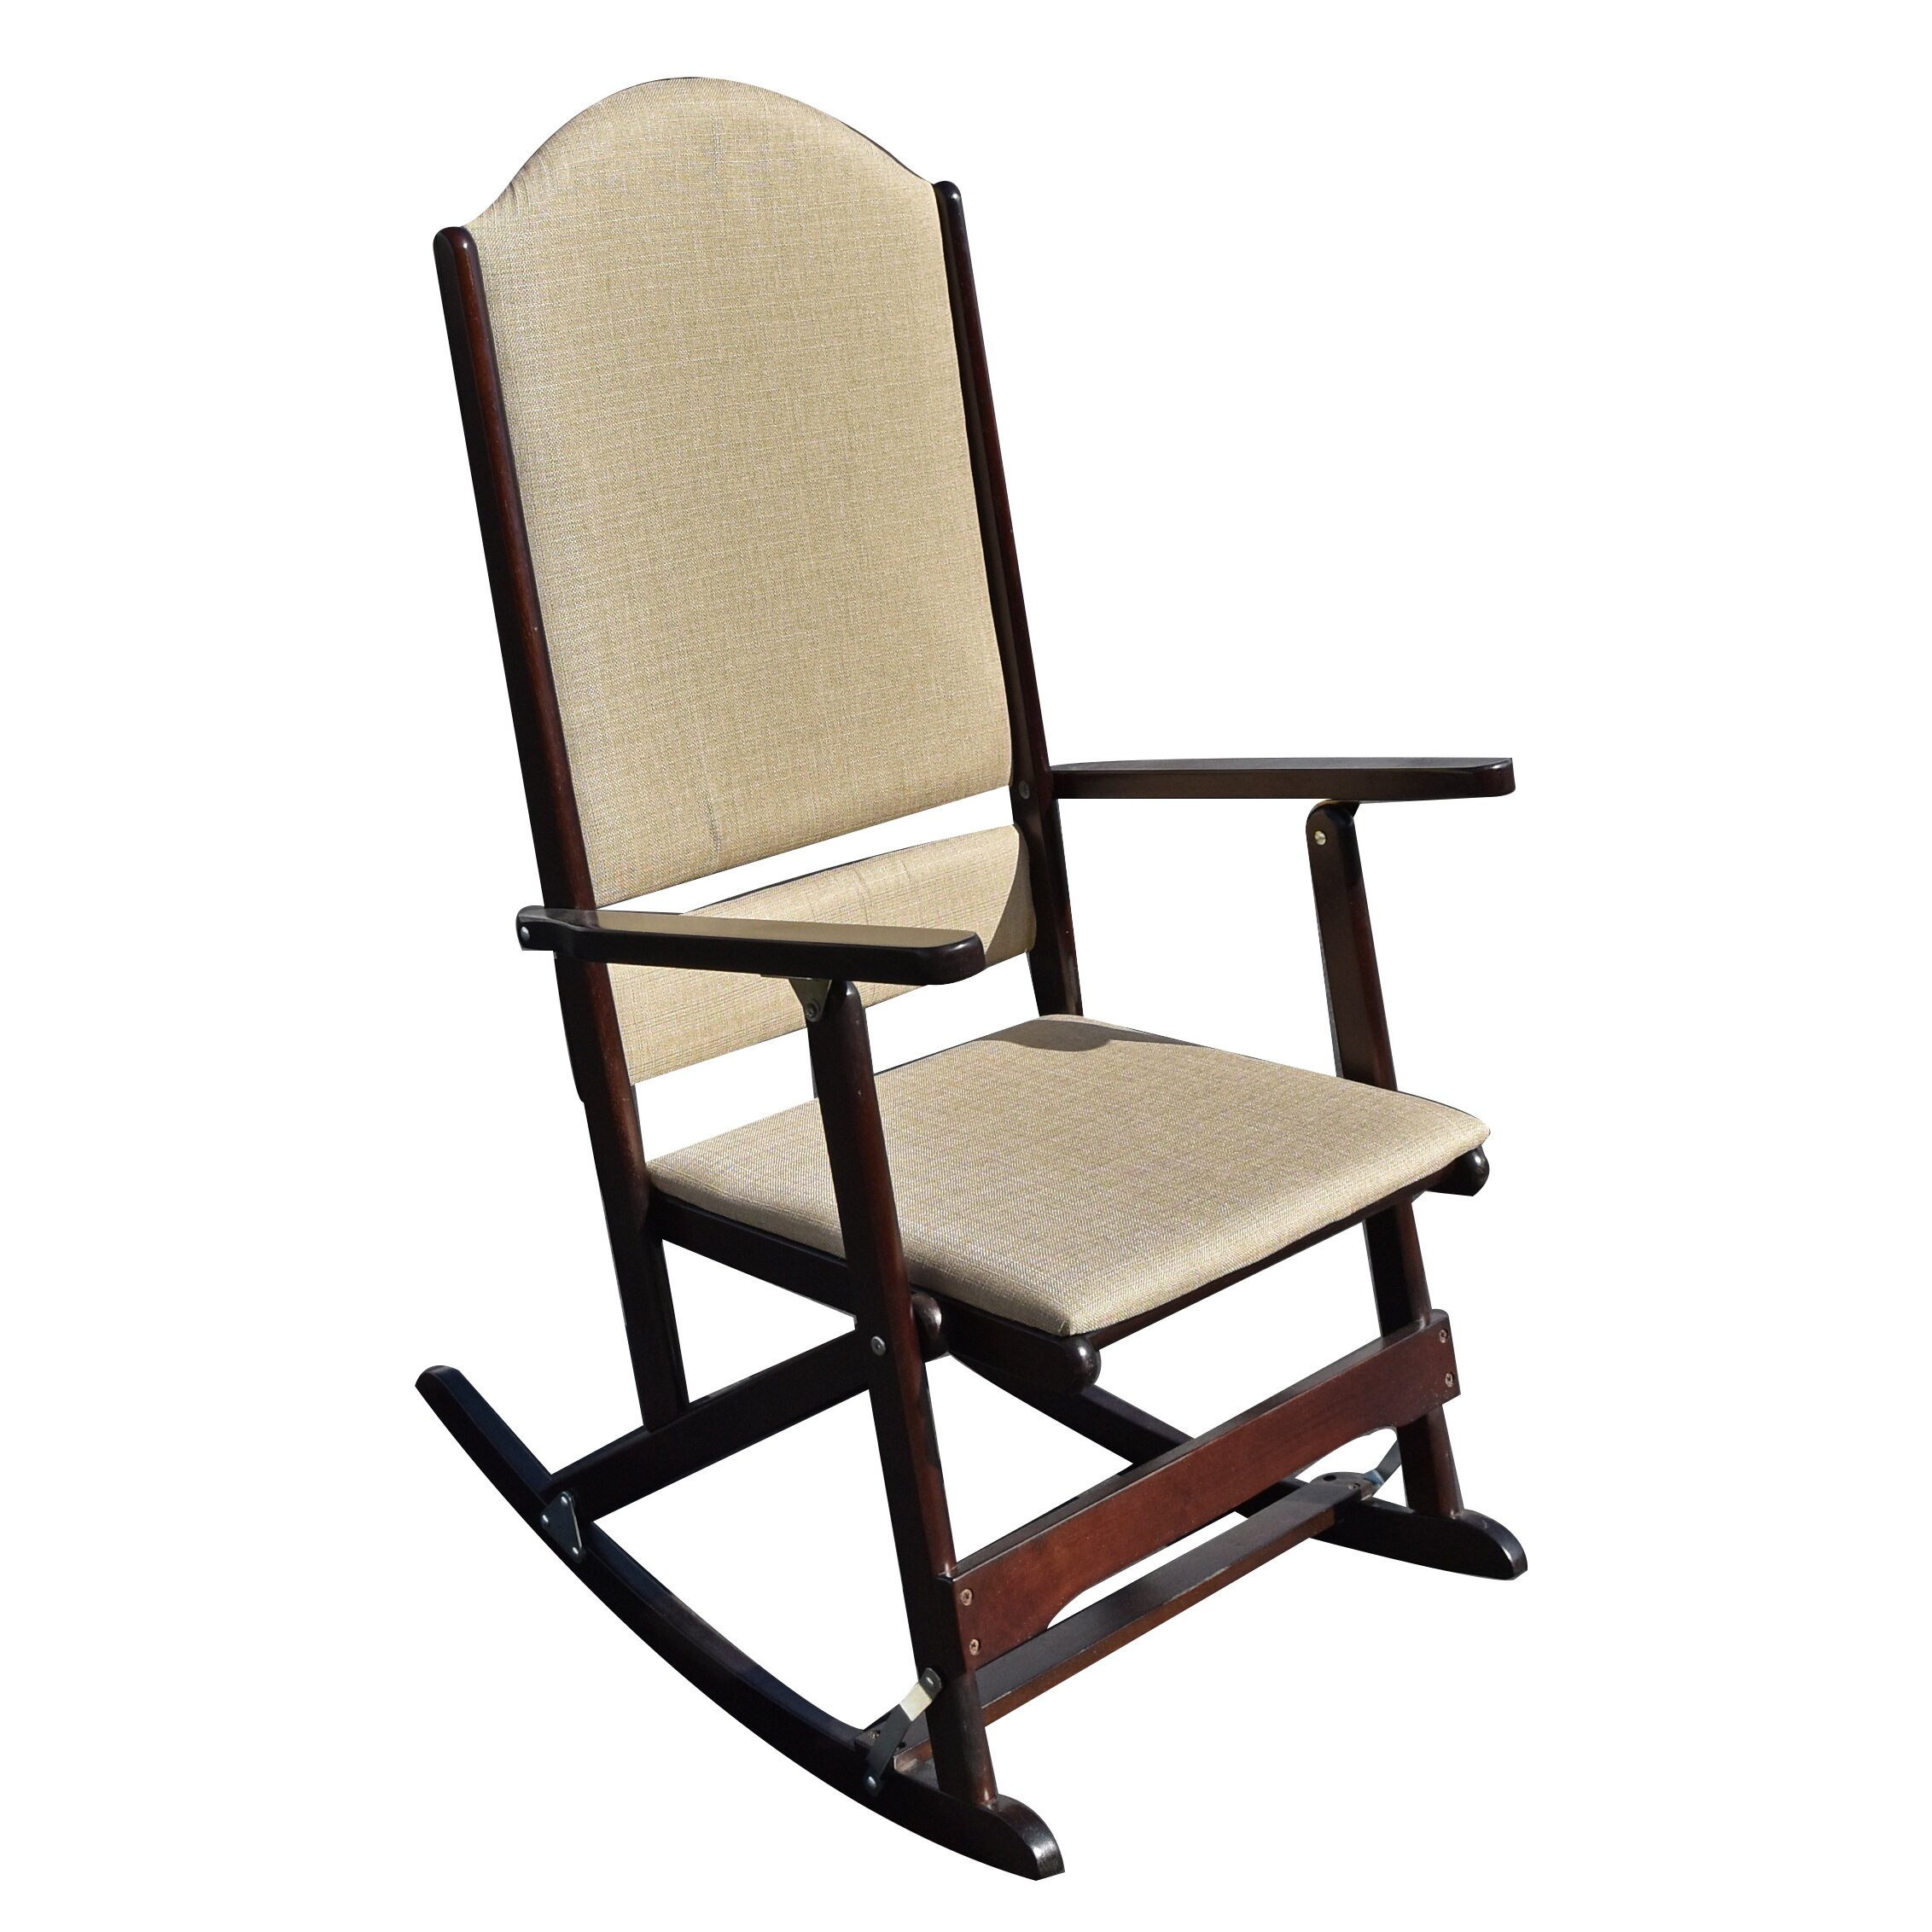 Rocking Chair I, Rocking Chair In A Bag, Rocking Chair In Homes R Us ...